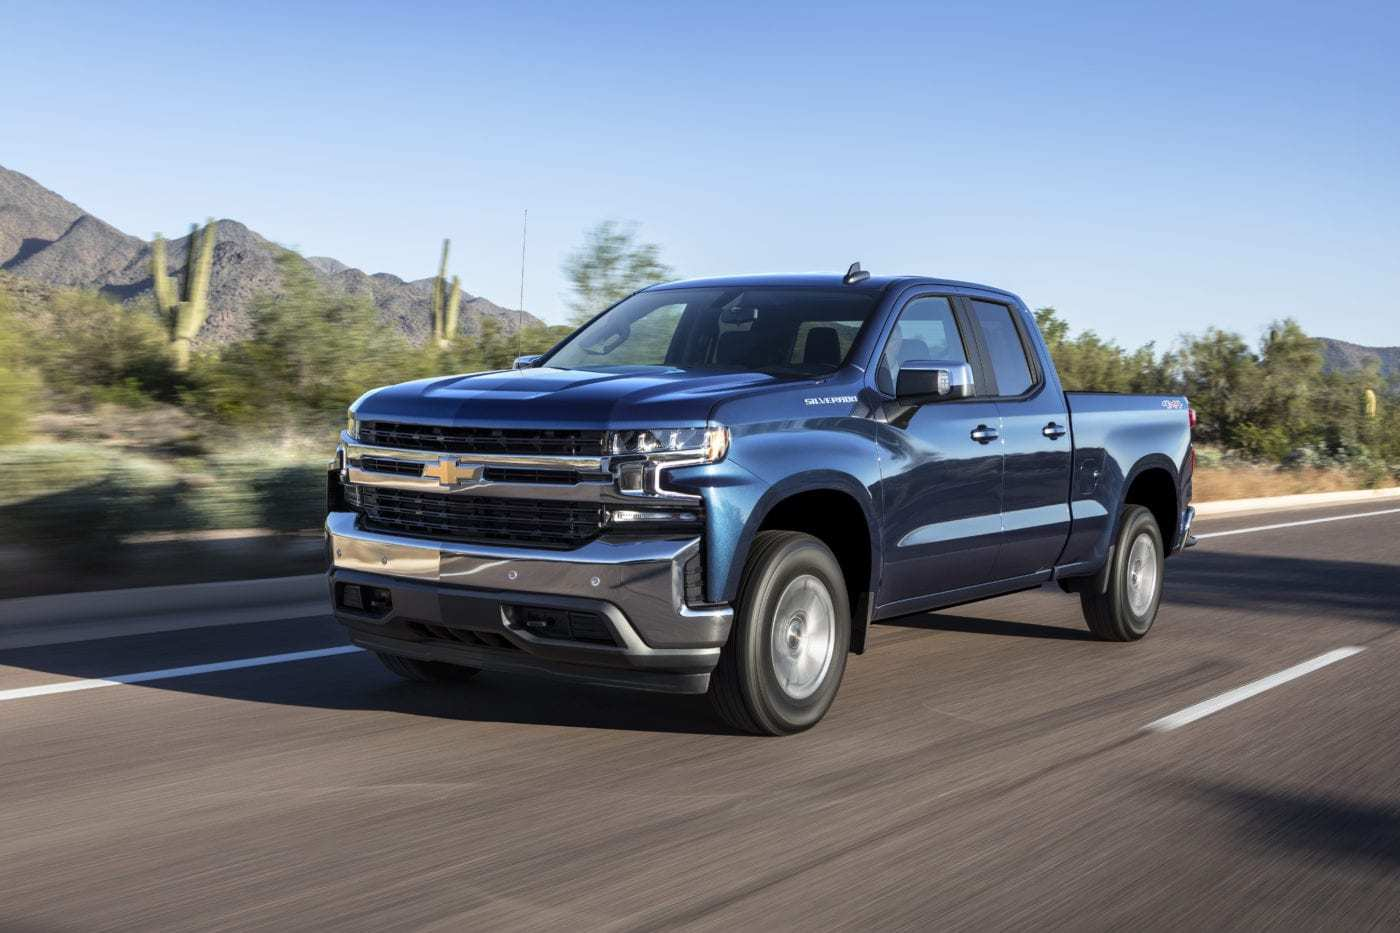 26 The Best 2020 Chevy Silverado Picture